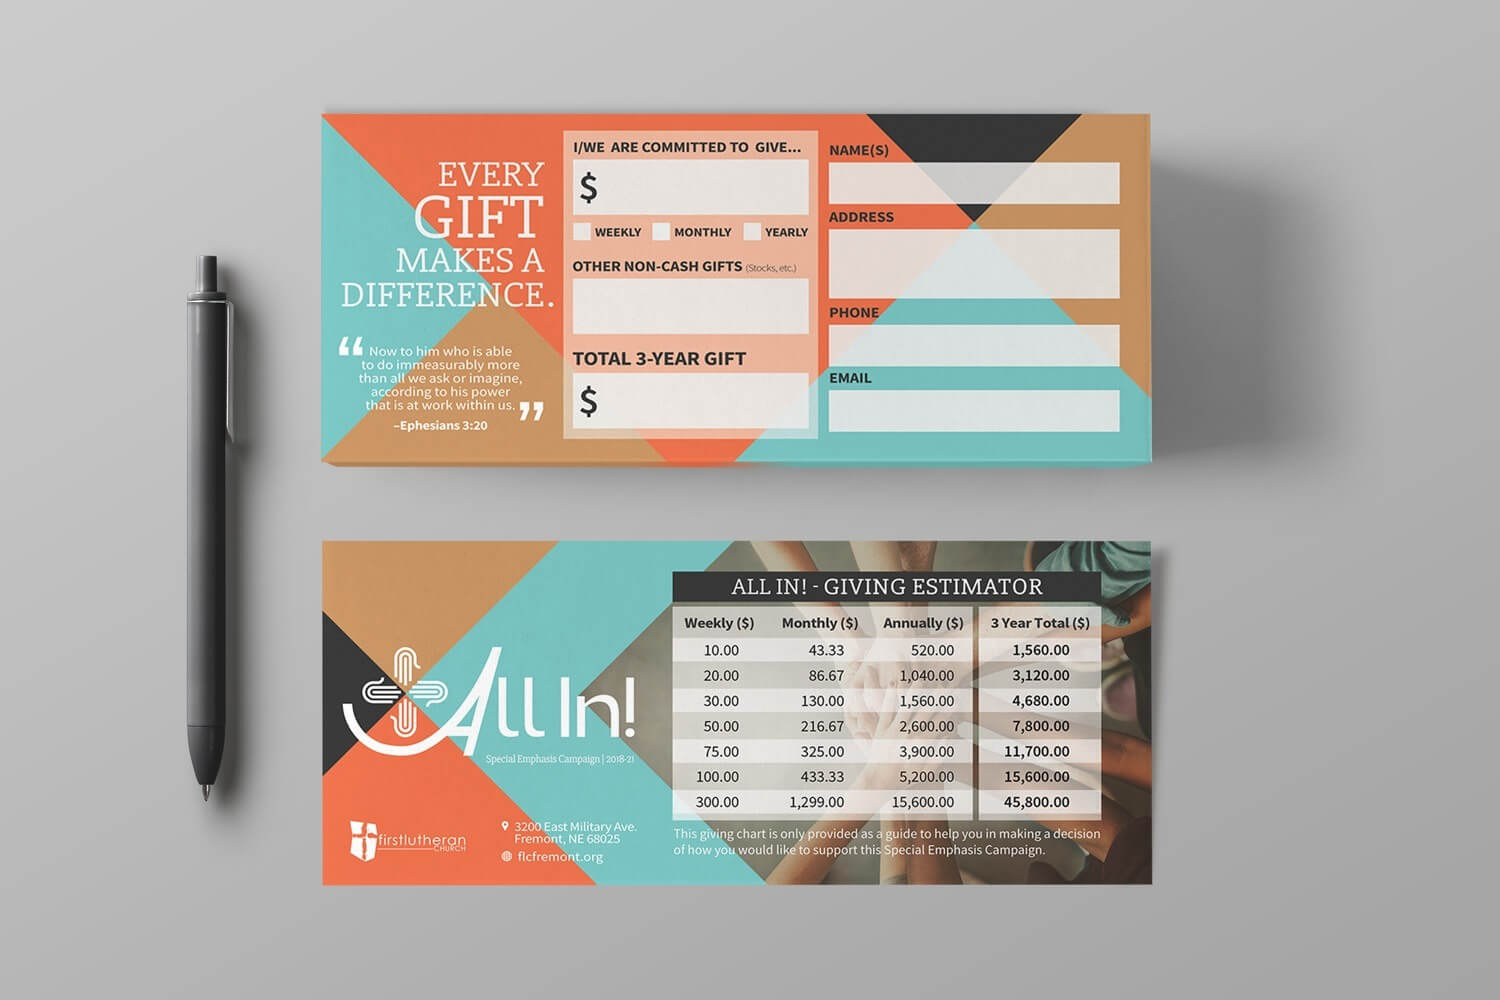 Pledge Cards & Commitment Cards | Church Campaign Design within Pledge Card Template For Church